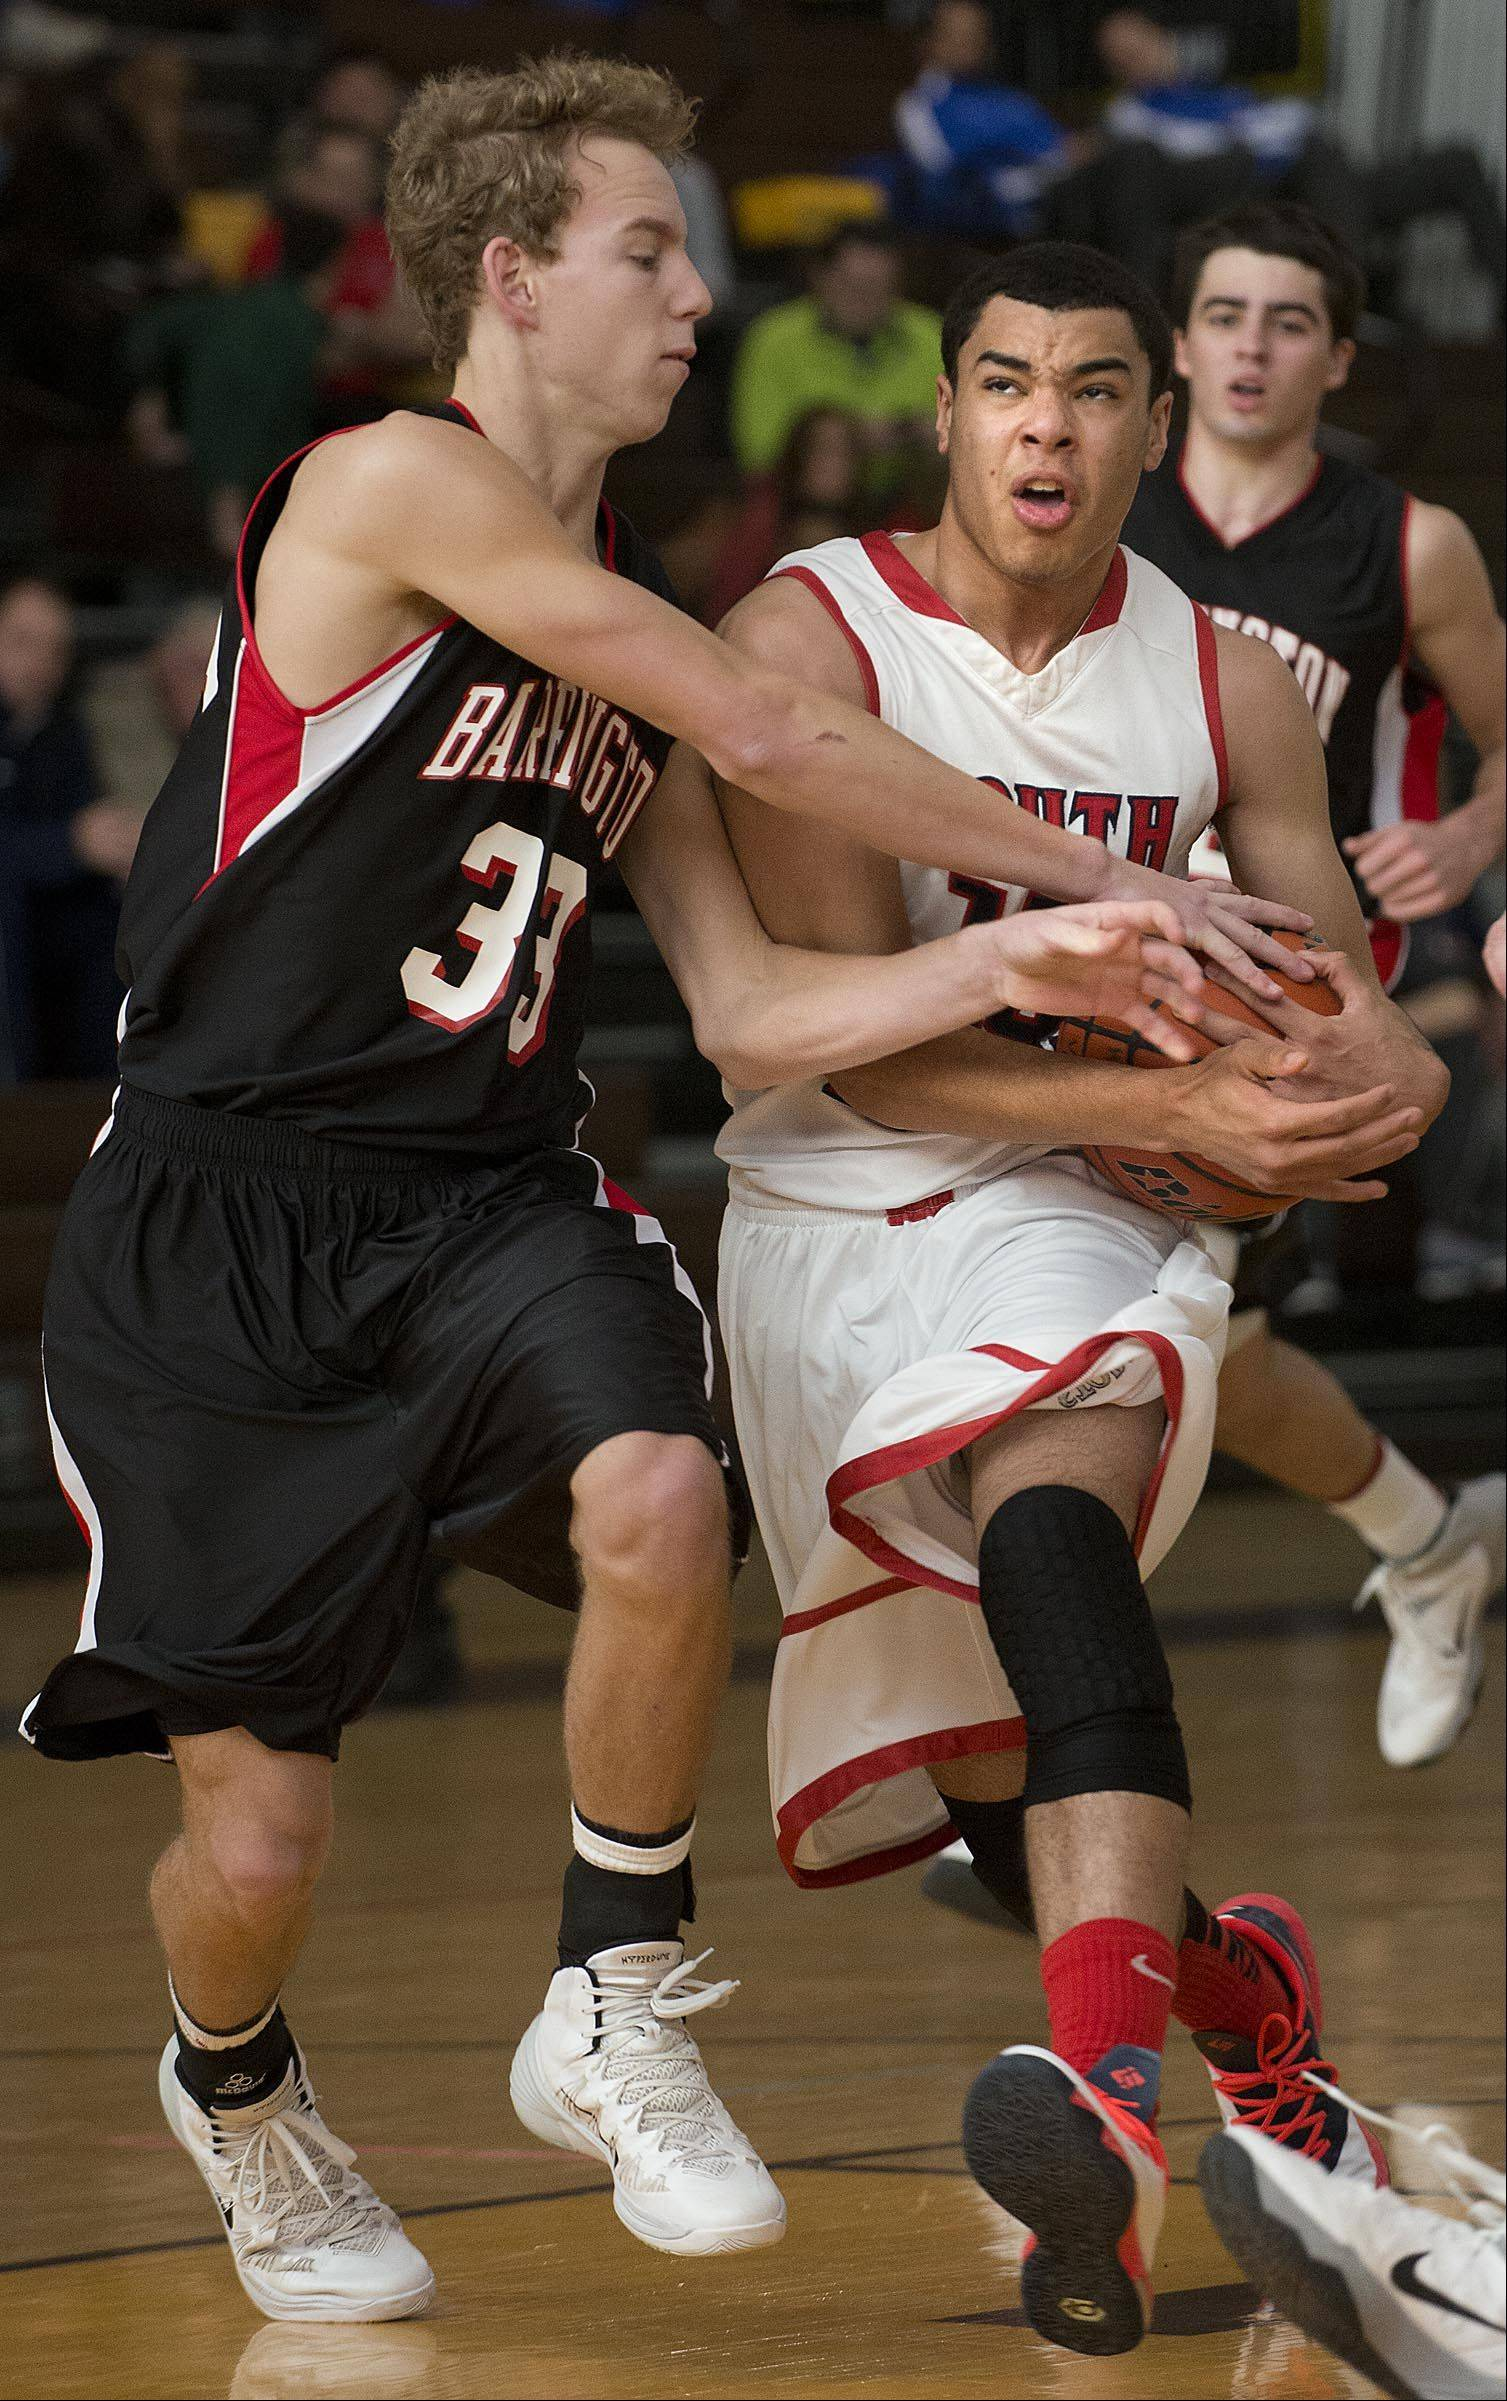 Barrington's Scott Bennett pressures South Elgin's Matthew Smith Monday at the Hinkle Holiday Classic in Algonquin.